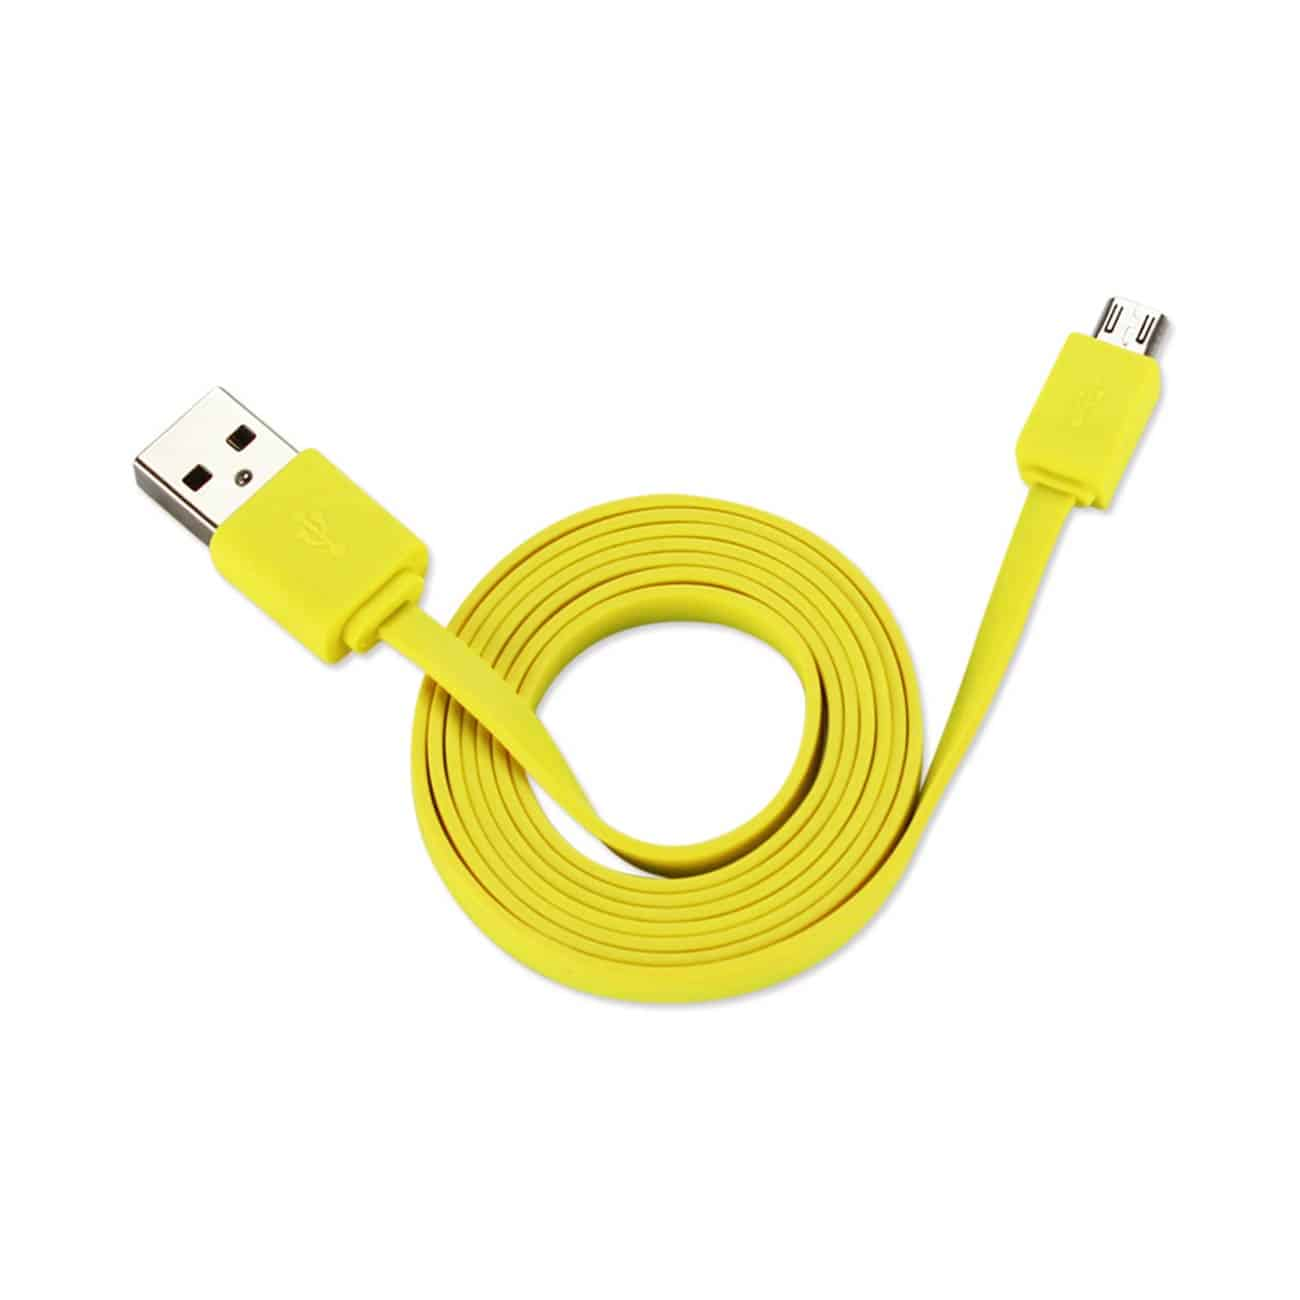 TANGLE FREE MICRO USB DATA CABLE 3.3FT IN YELLOW